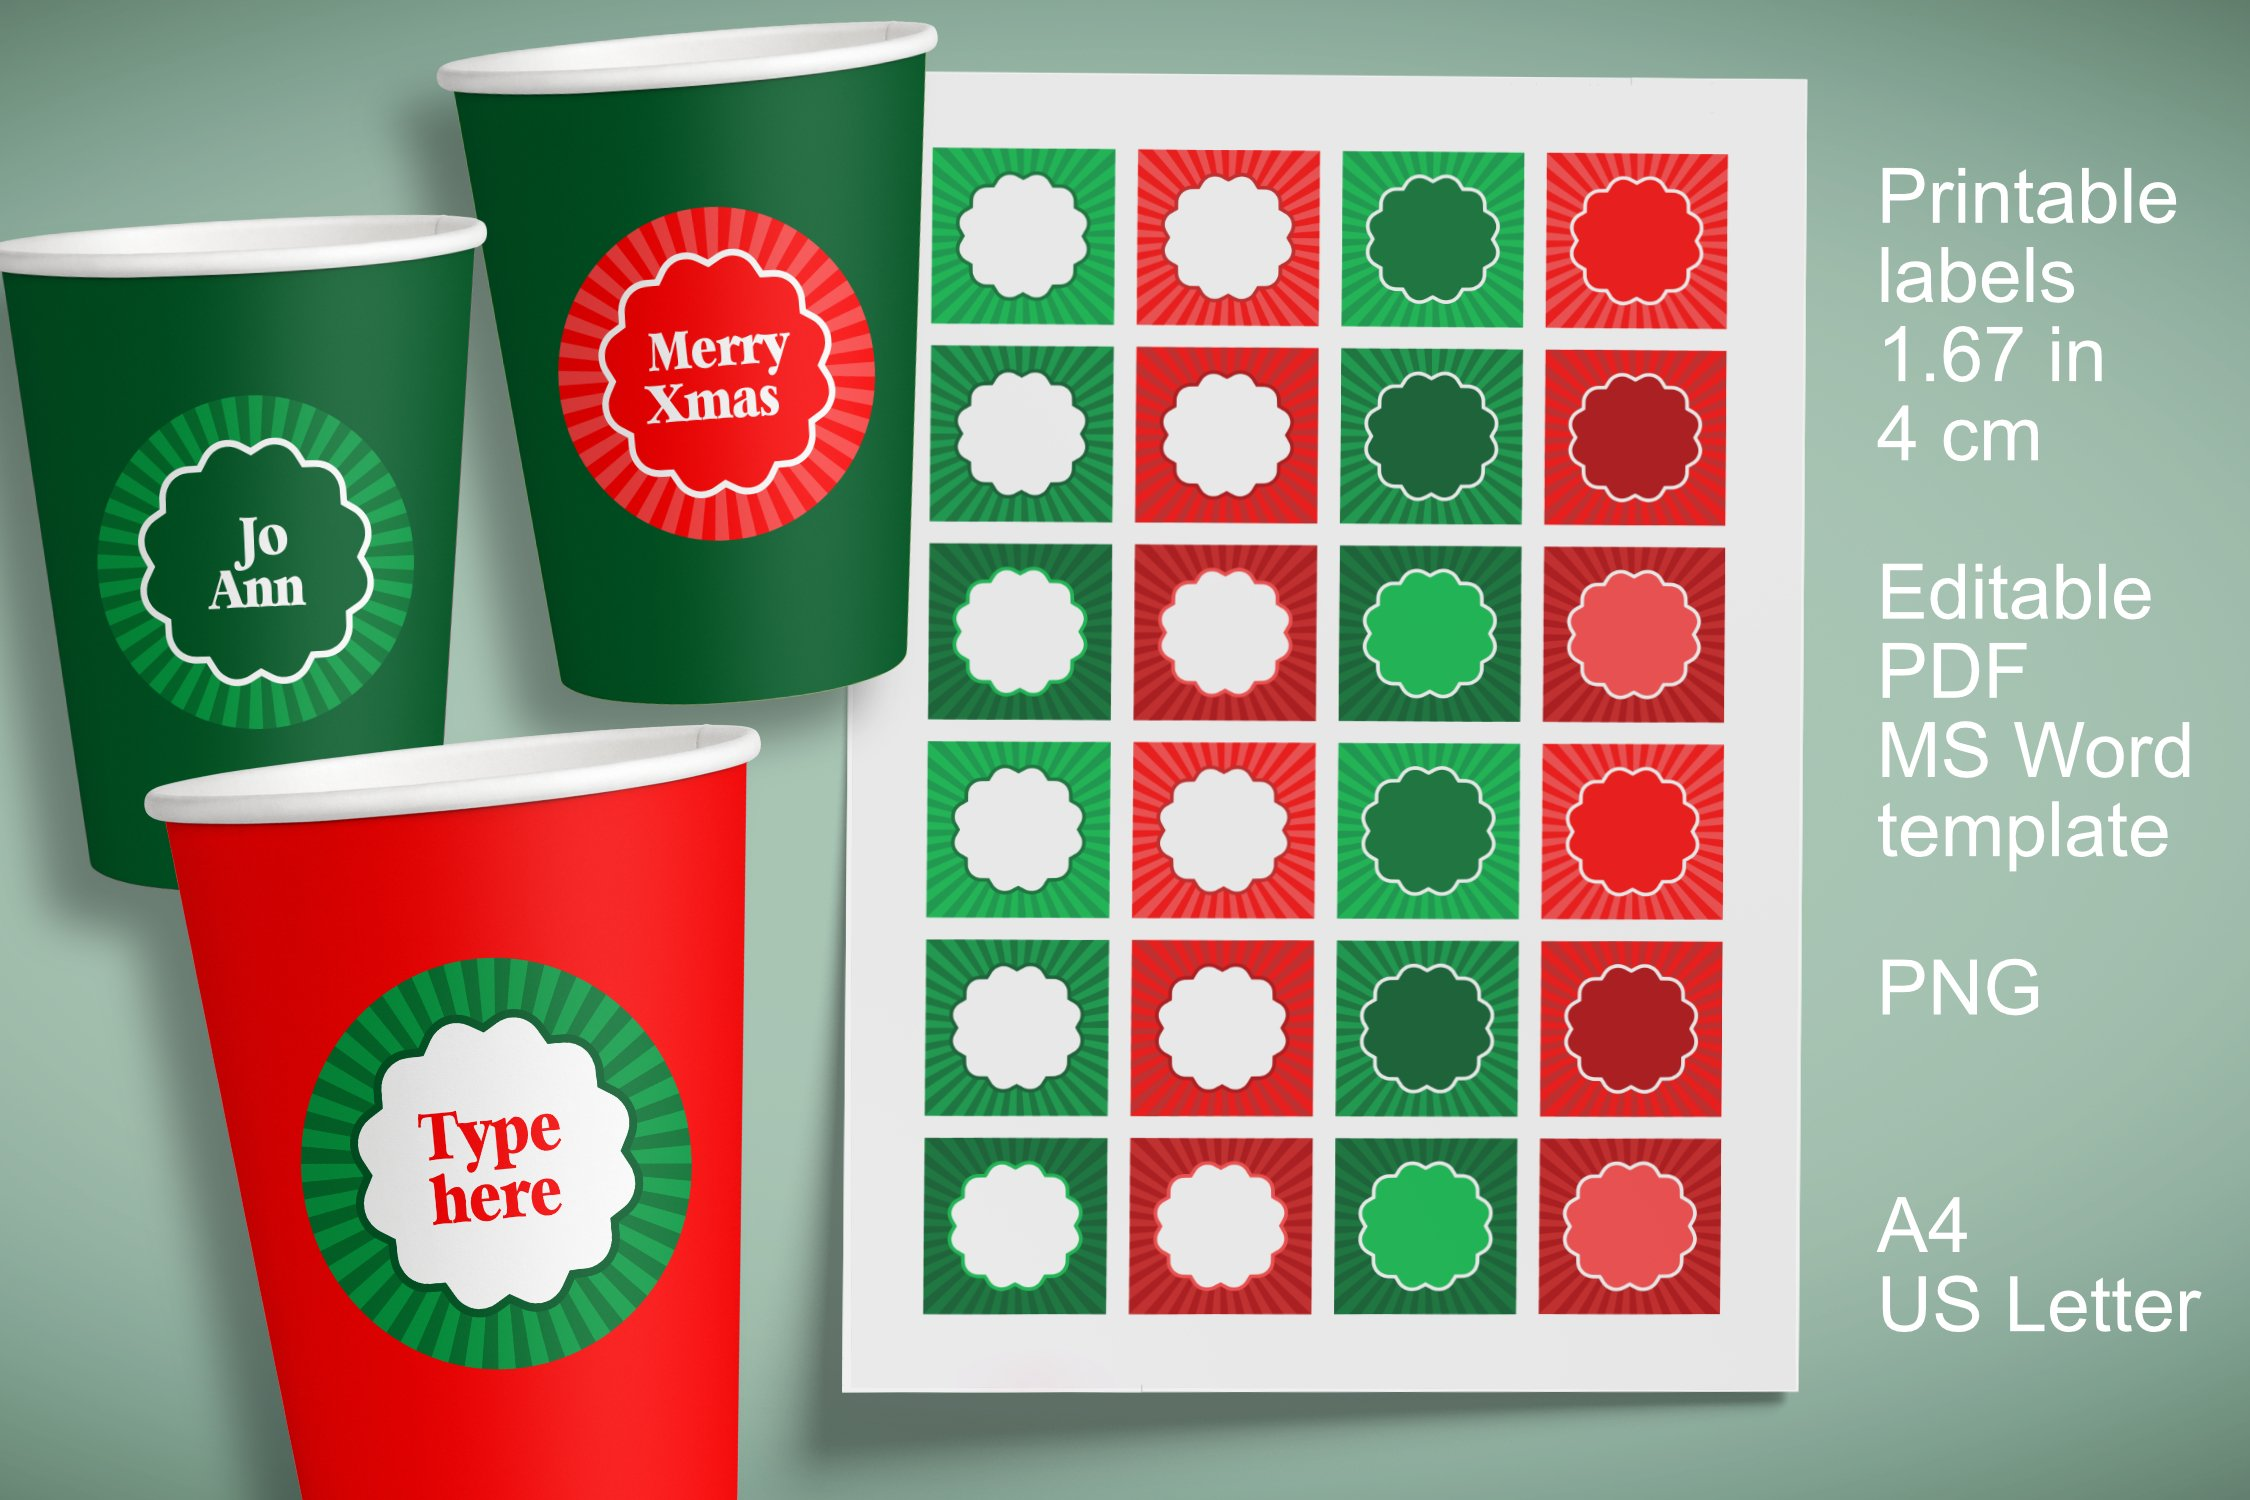 Small Christmas Labels 1.6 in, EU 4 cm for A4 and US Letter example image 2